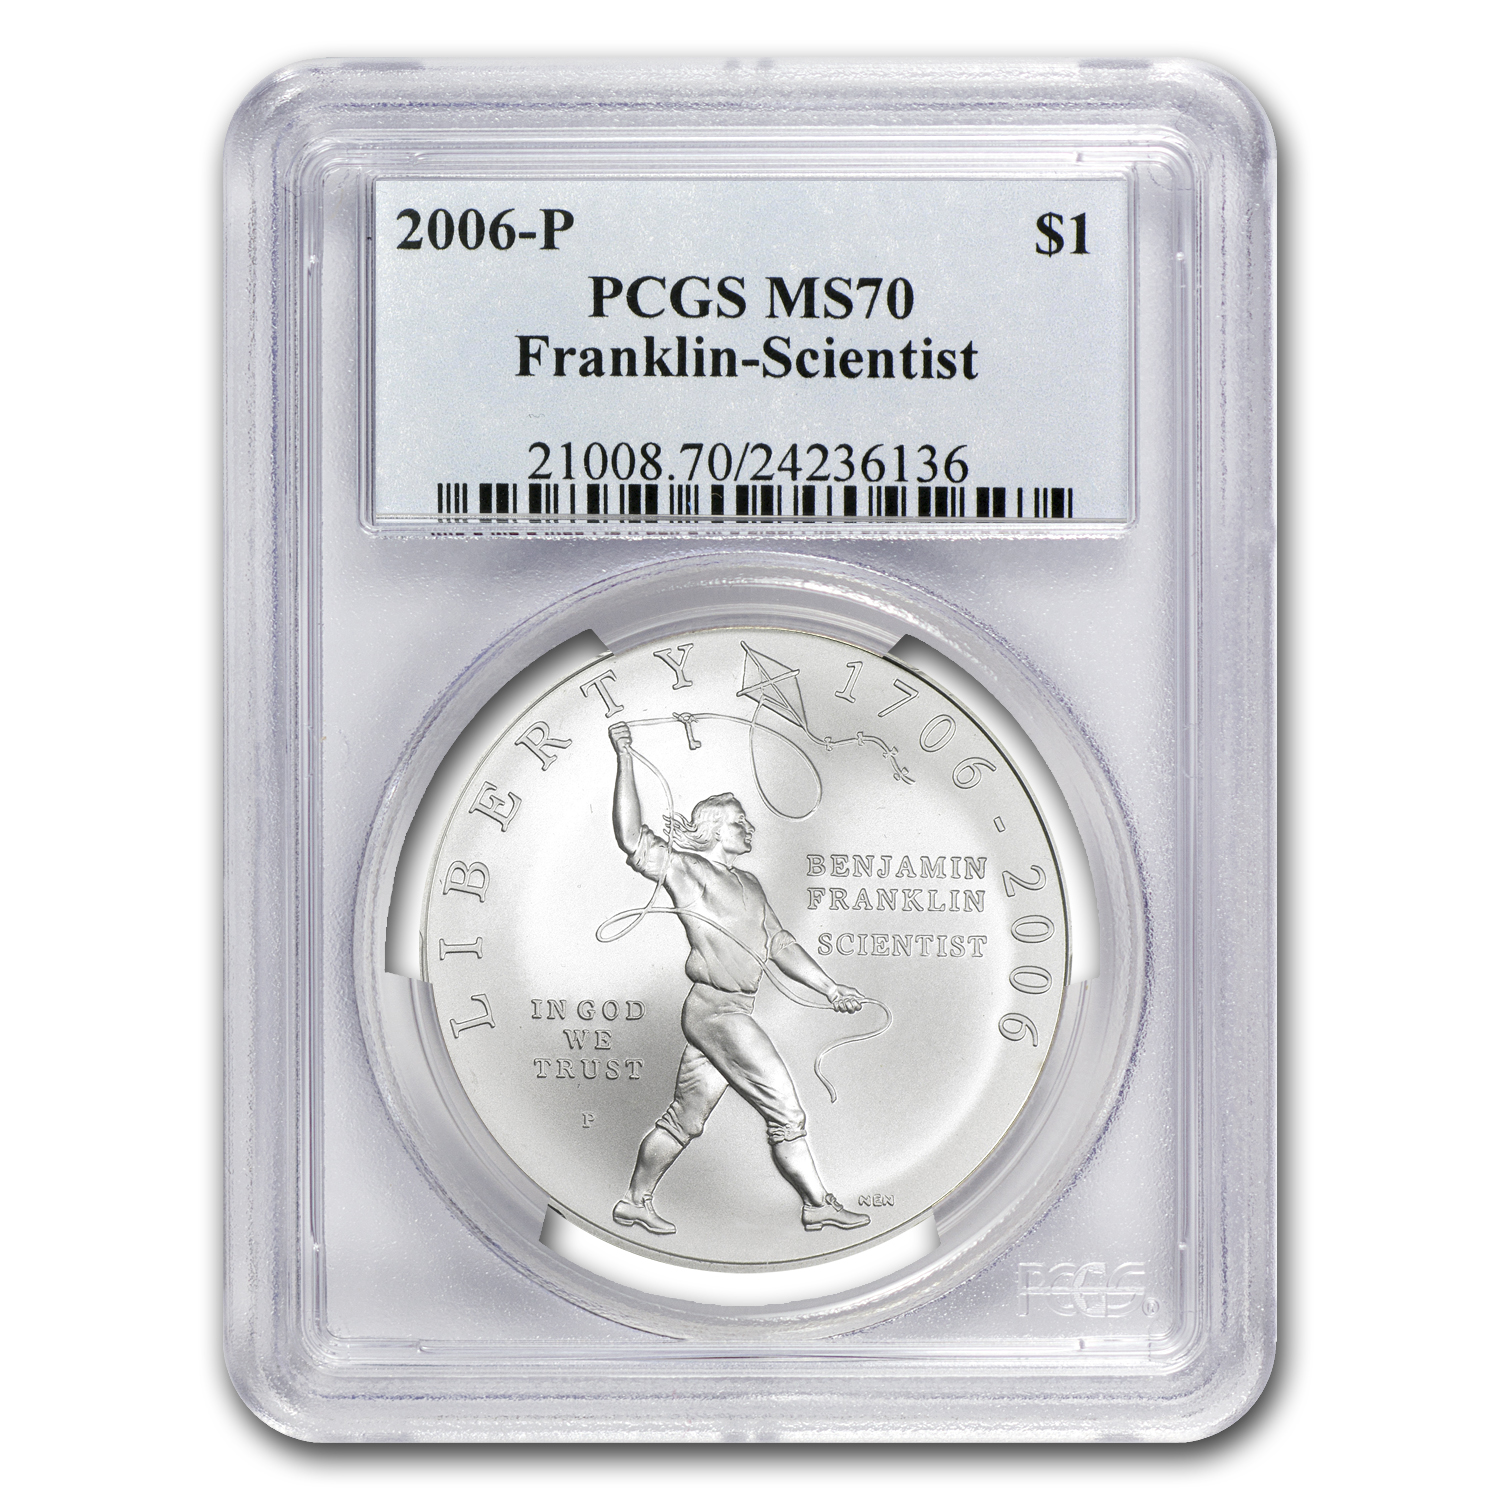 2006-P Ben Franklin Scientist $1 Silver Commemorative MS-70 PCGS